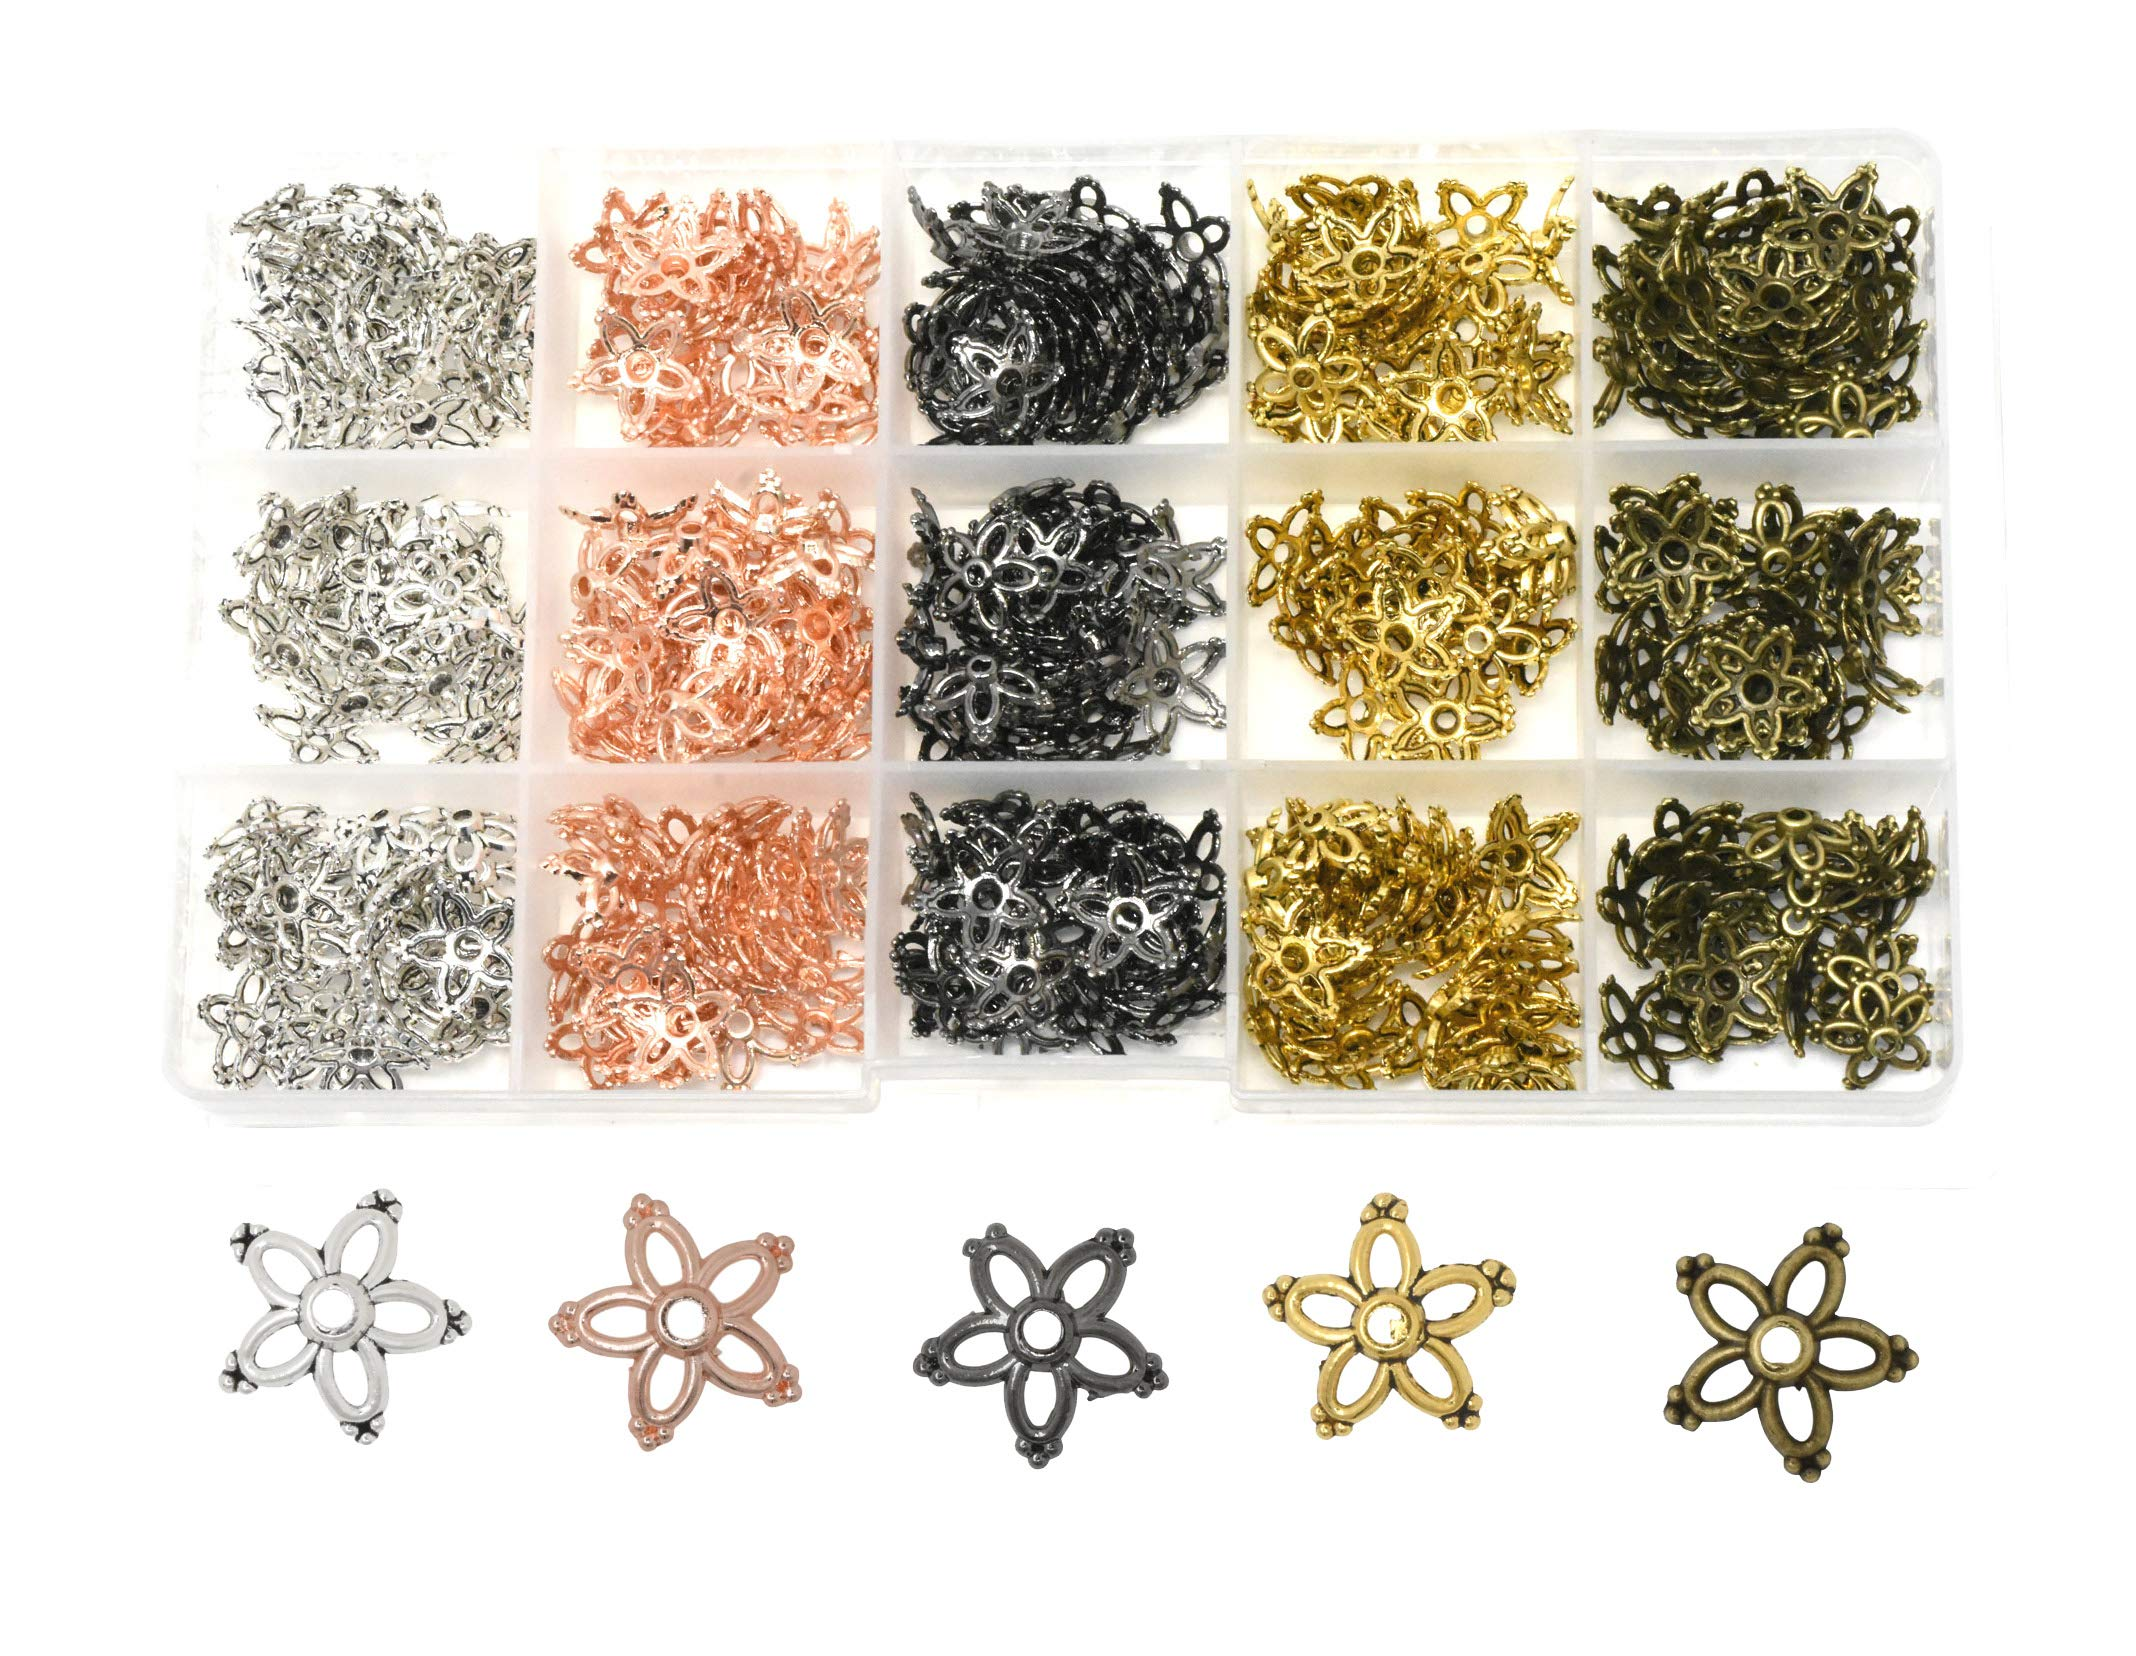 Mandala Crafts End Bead Cap, End Cap Bead Cover Assorted Set from Metal for Jewelry Making; Rose Gold, Gunmetal, Silver, Gold Color (Floral Petal, 13mm) by Mandala Crafts